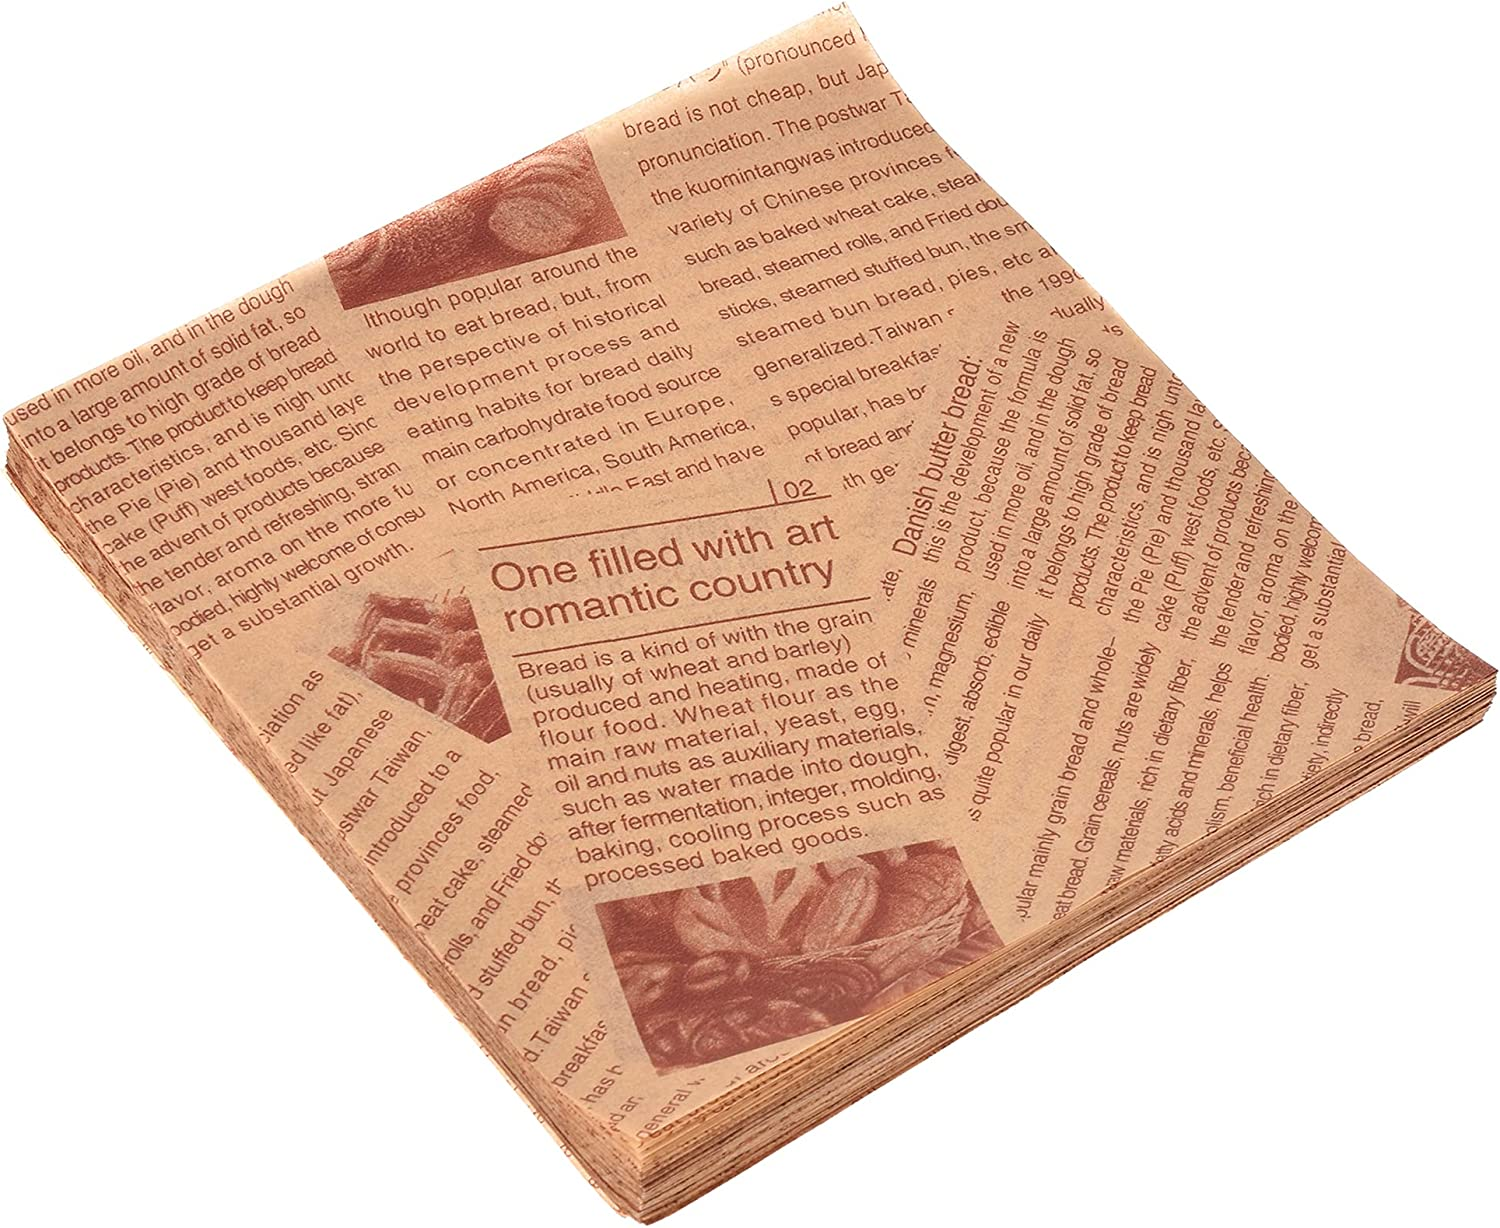 ZIIVARD 200 Sheets Deli Paper Greaseproof Wax Paper Liners Basket -Food Grade Disposable Food Wrapping Taco Sandwich Burger Paper Wrappers Baking Parchment-5.9in,Brown